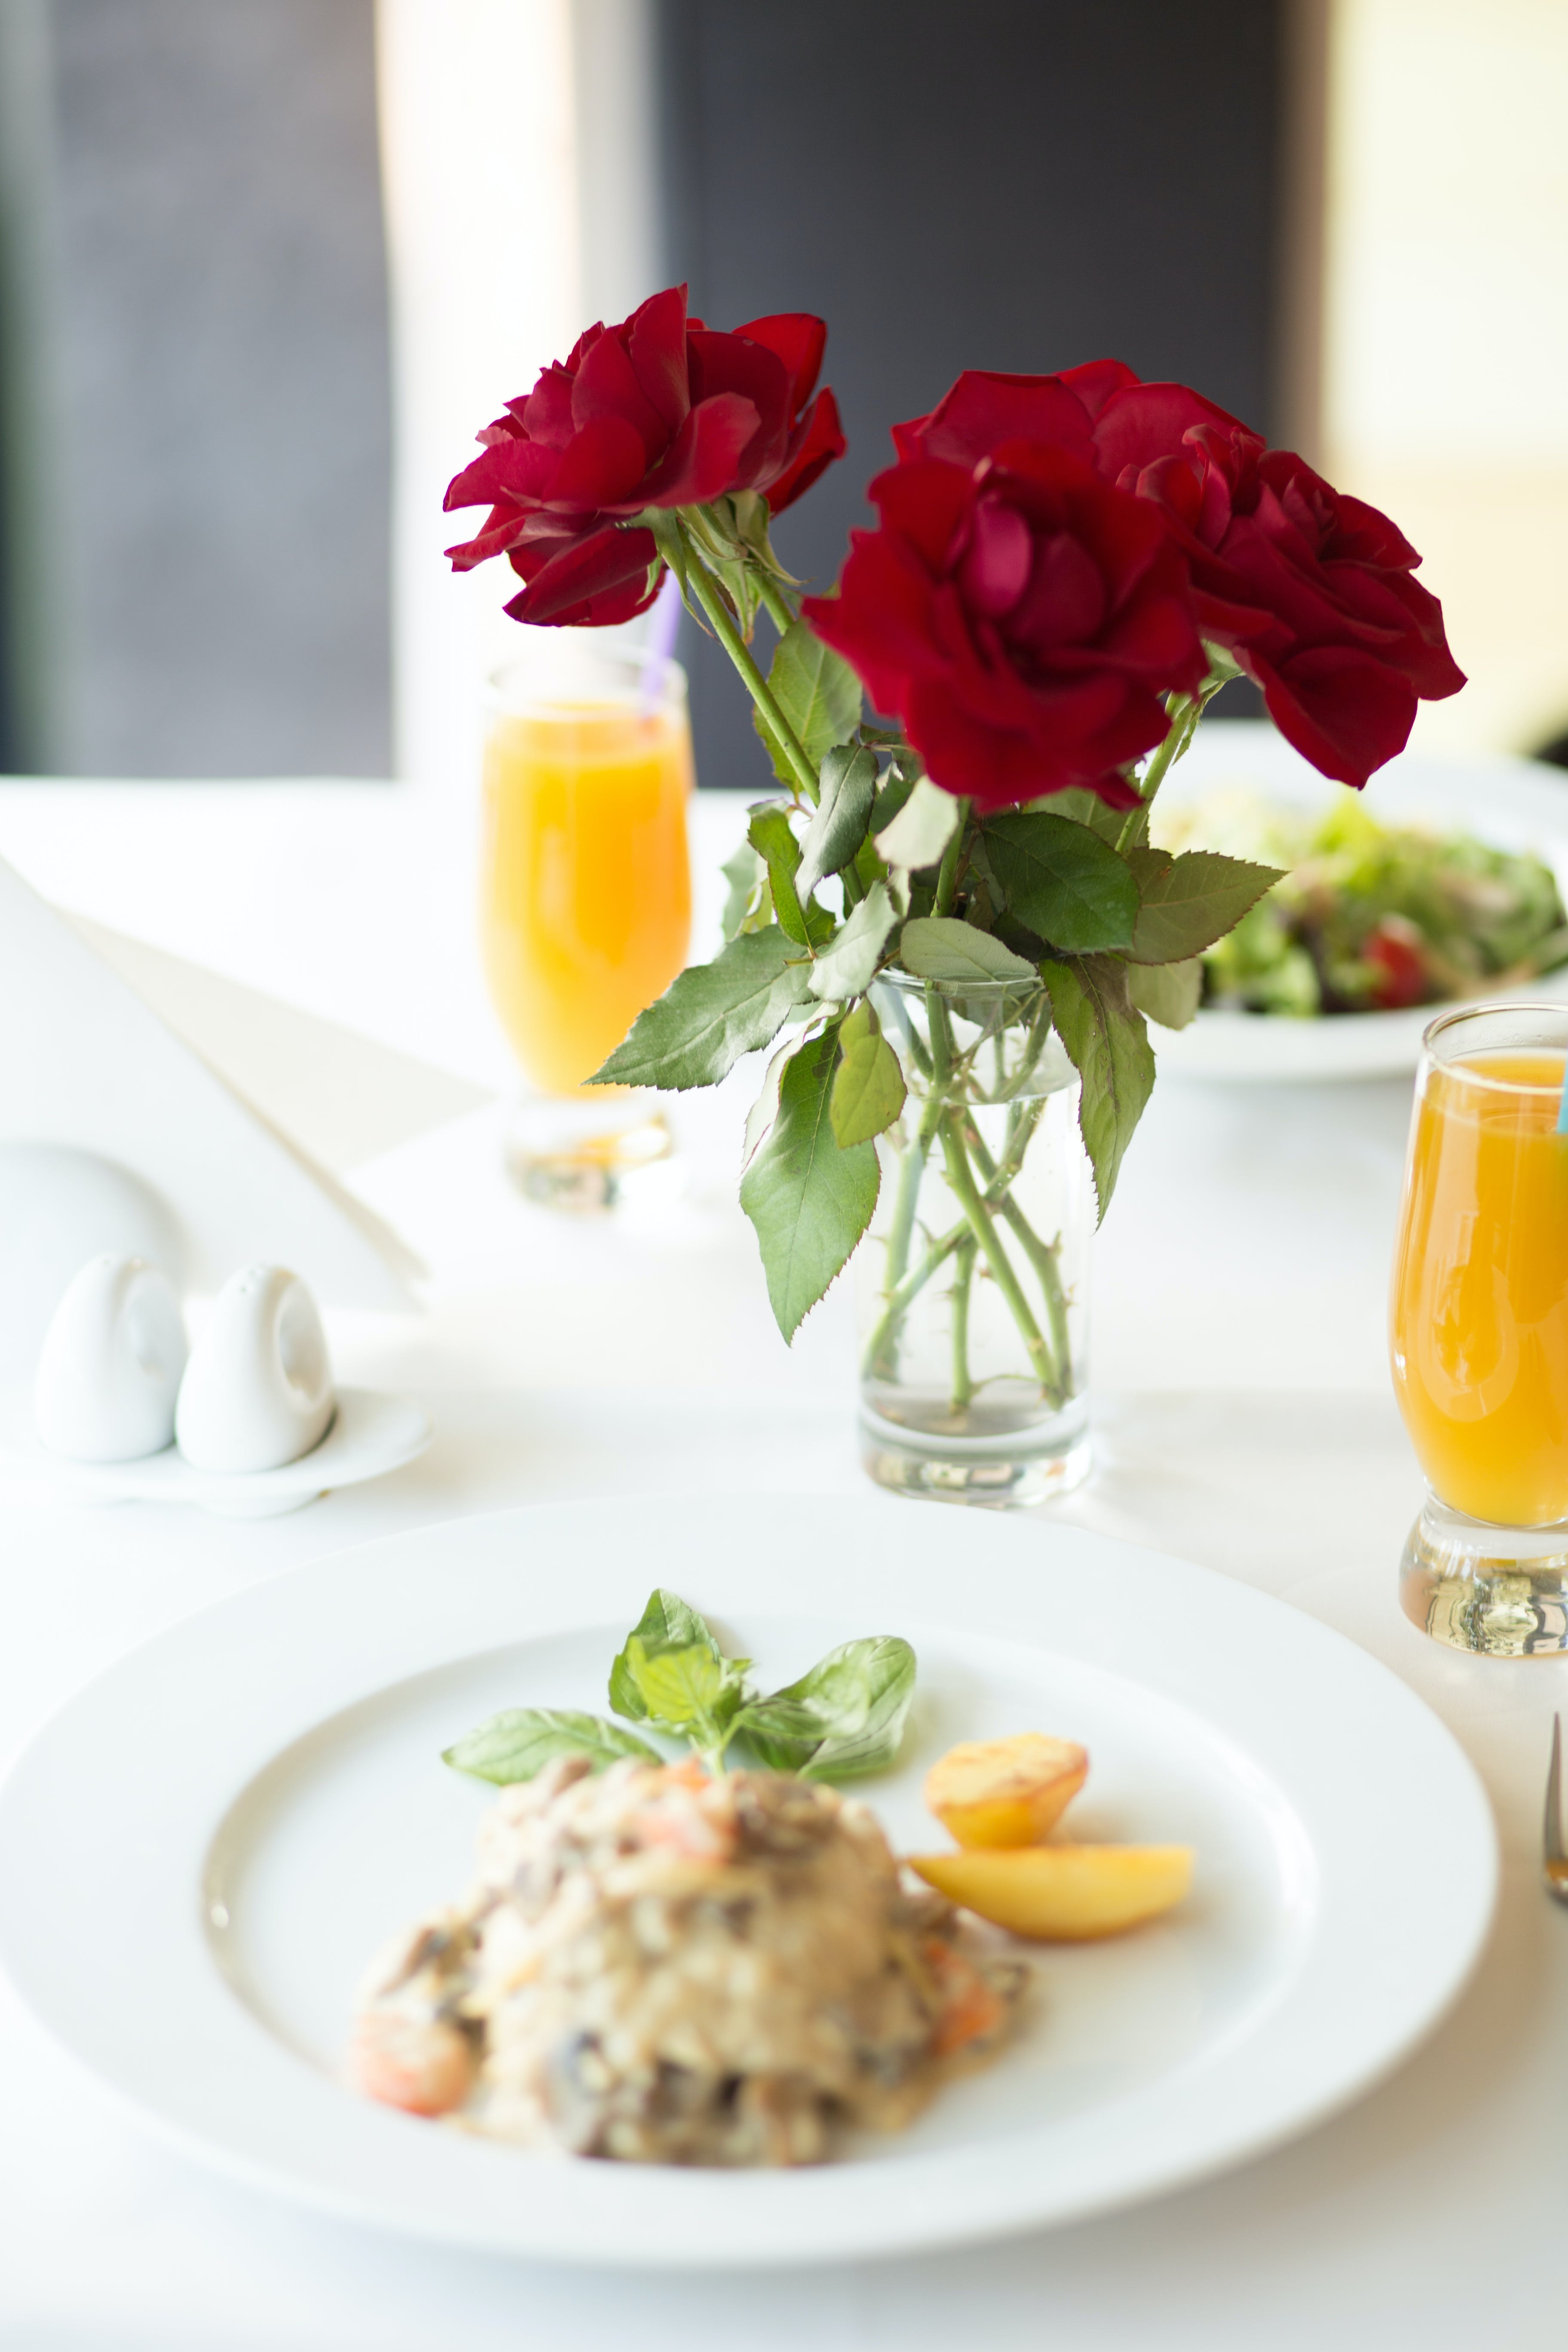 Cooked Food on Plate on Table Beside Red Rose Flowers